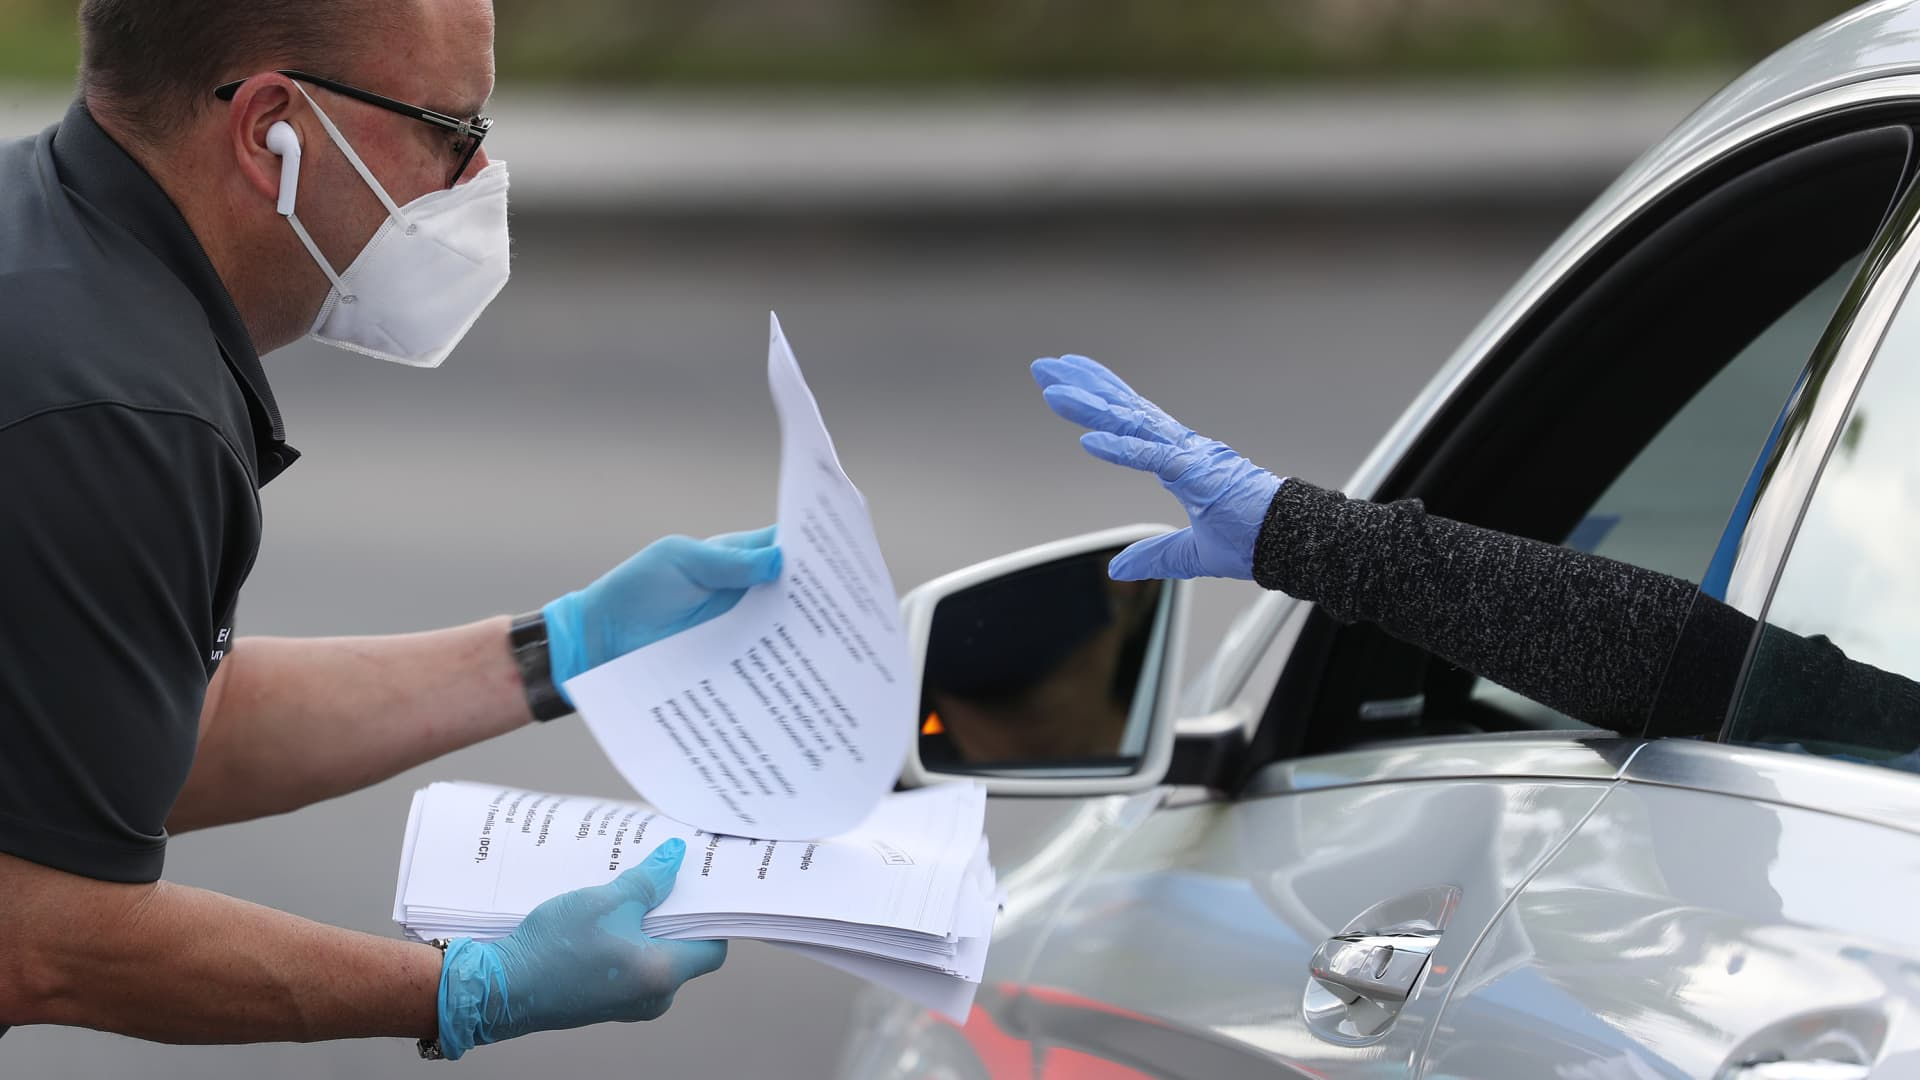 Eddie Rodriguez, who works for the City of Hialeah, hands out unemployment applications to people in their vehicles on April 8, 2020 in Hialeah, Florida.